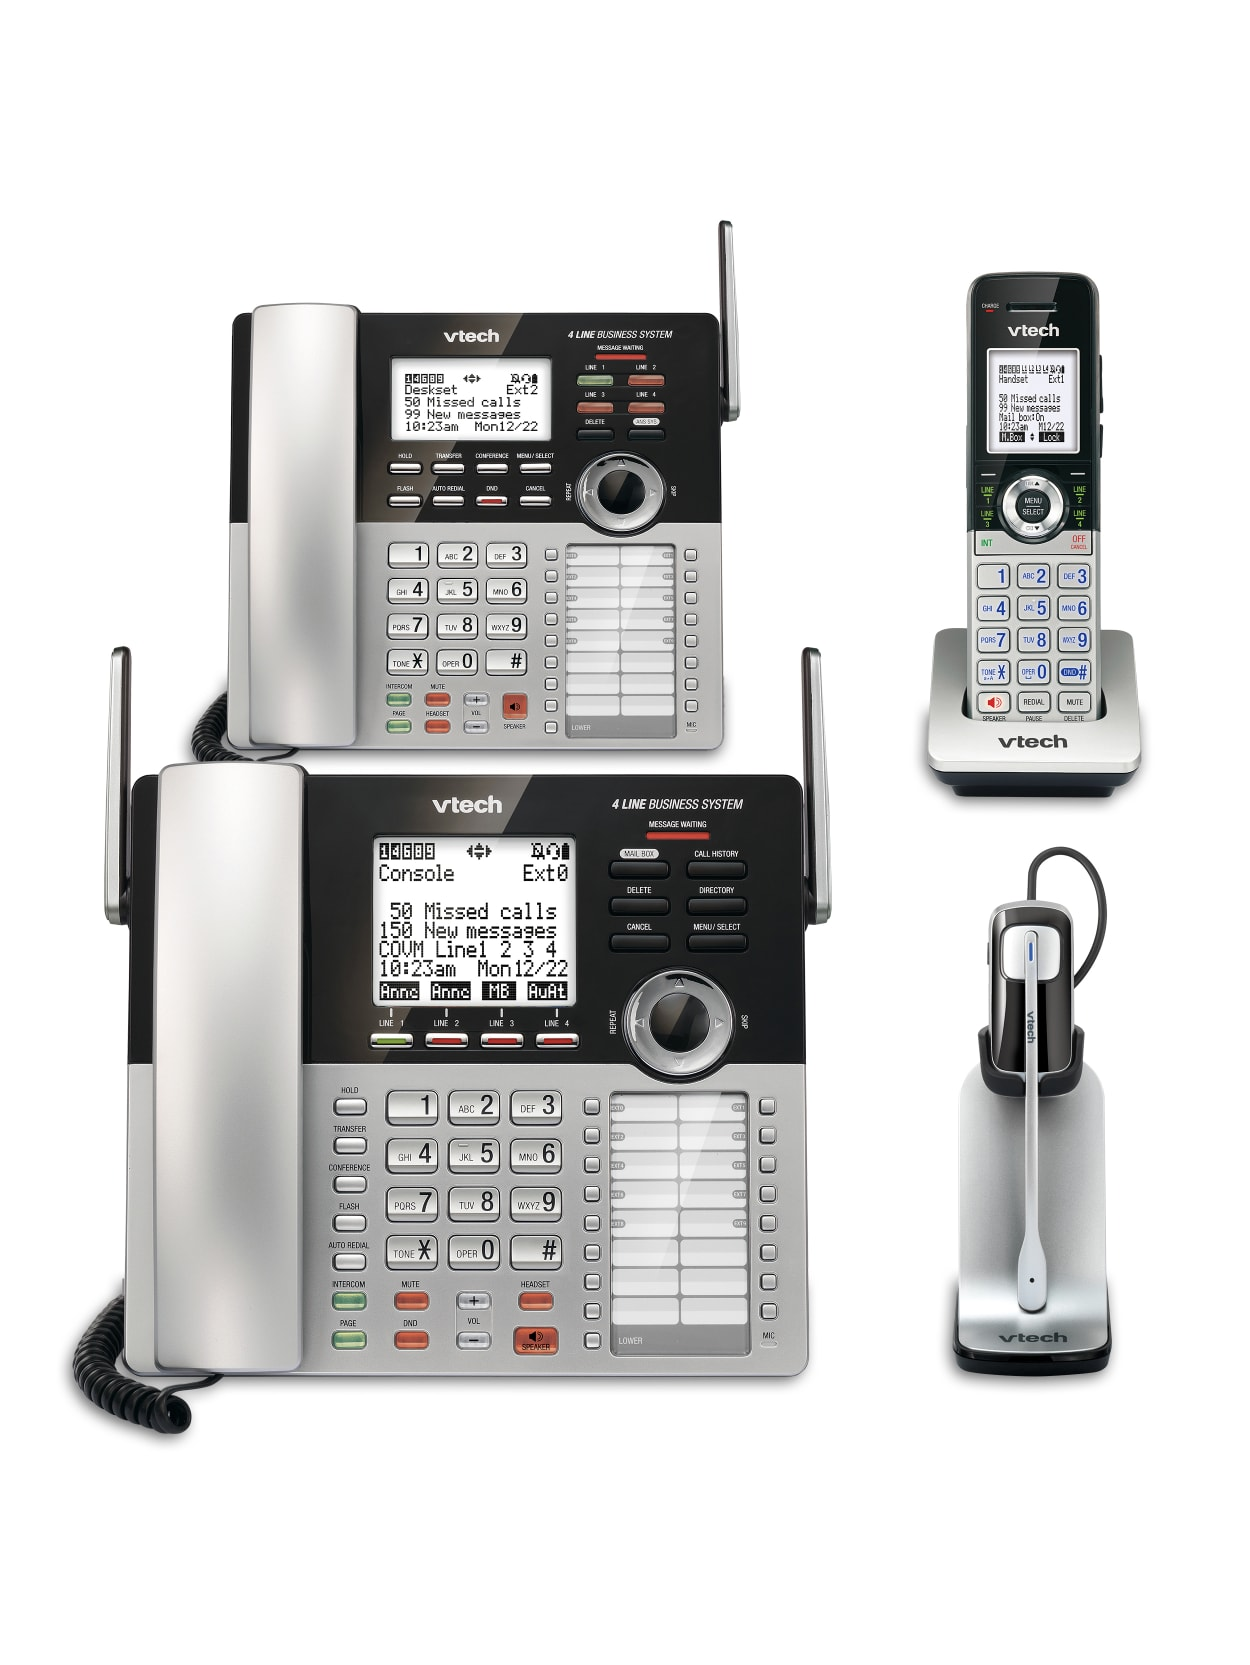 Vtech Cm18445 4 Line Small Business Office Phone System Bundle With 2 Desksets 1 Handset And 1 Headset Office Depot